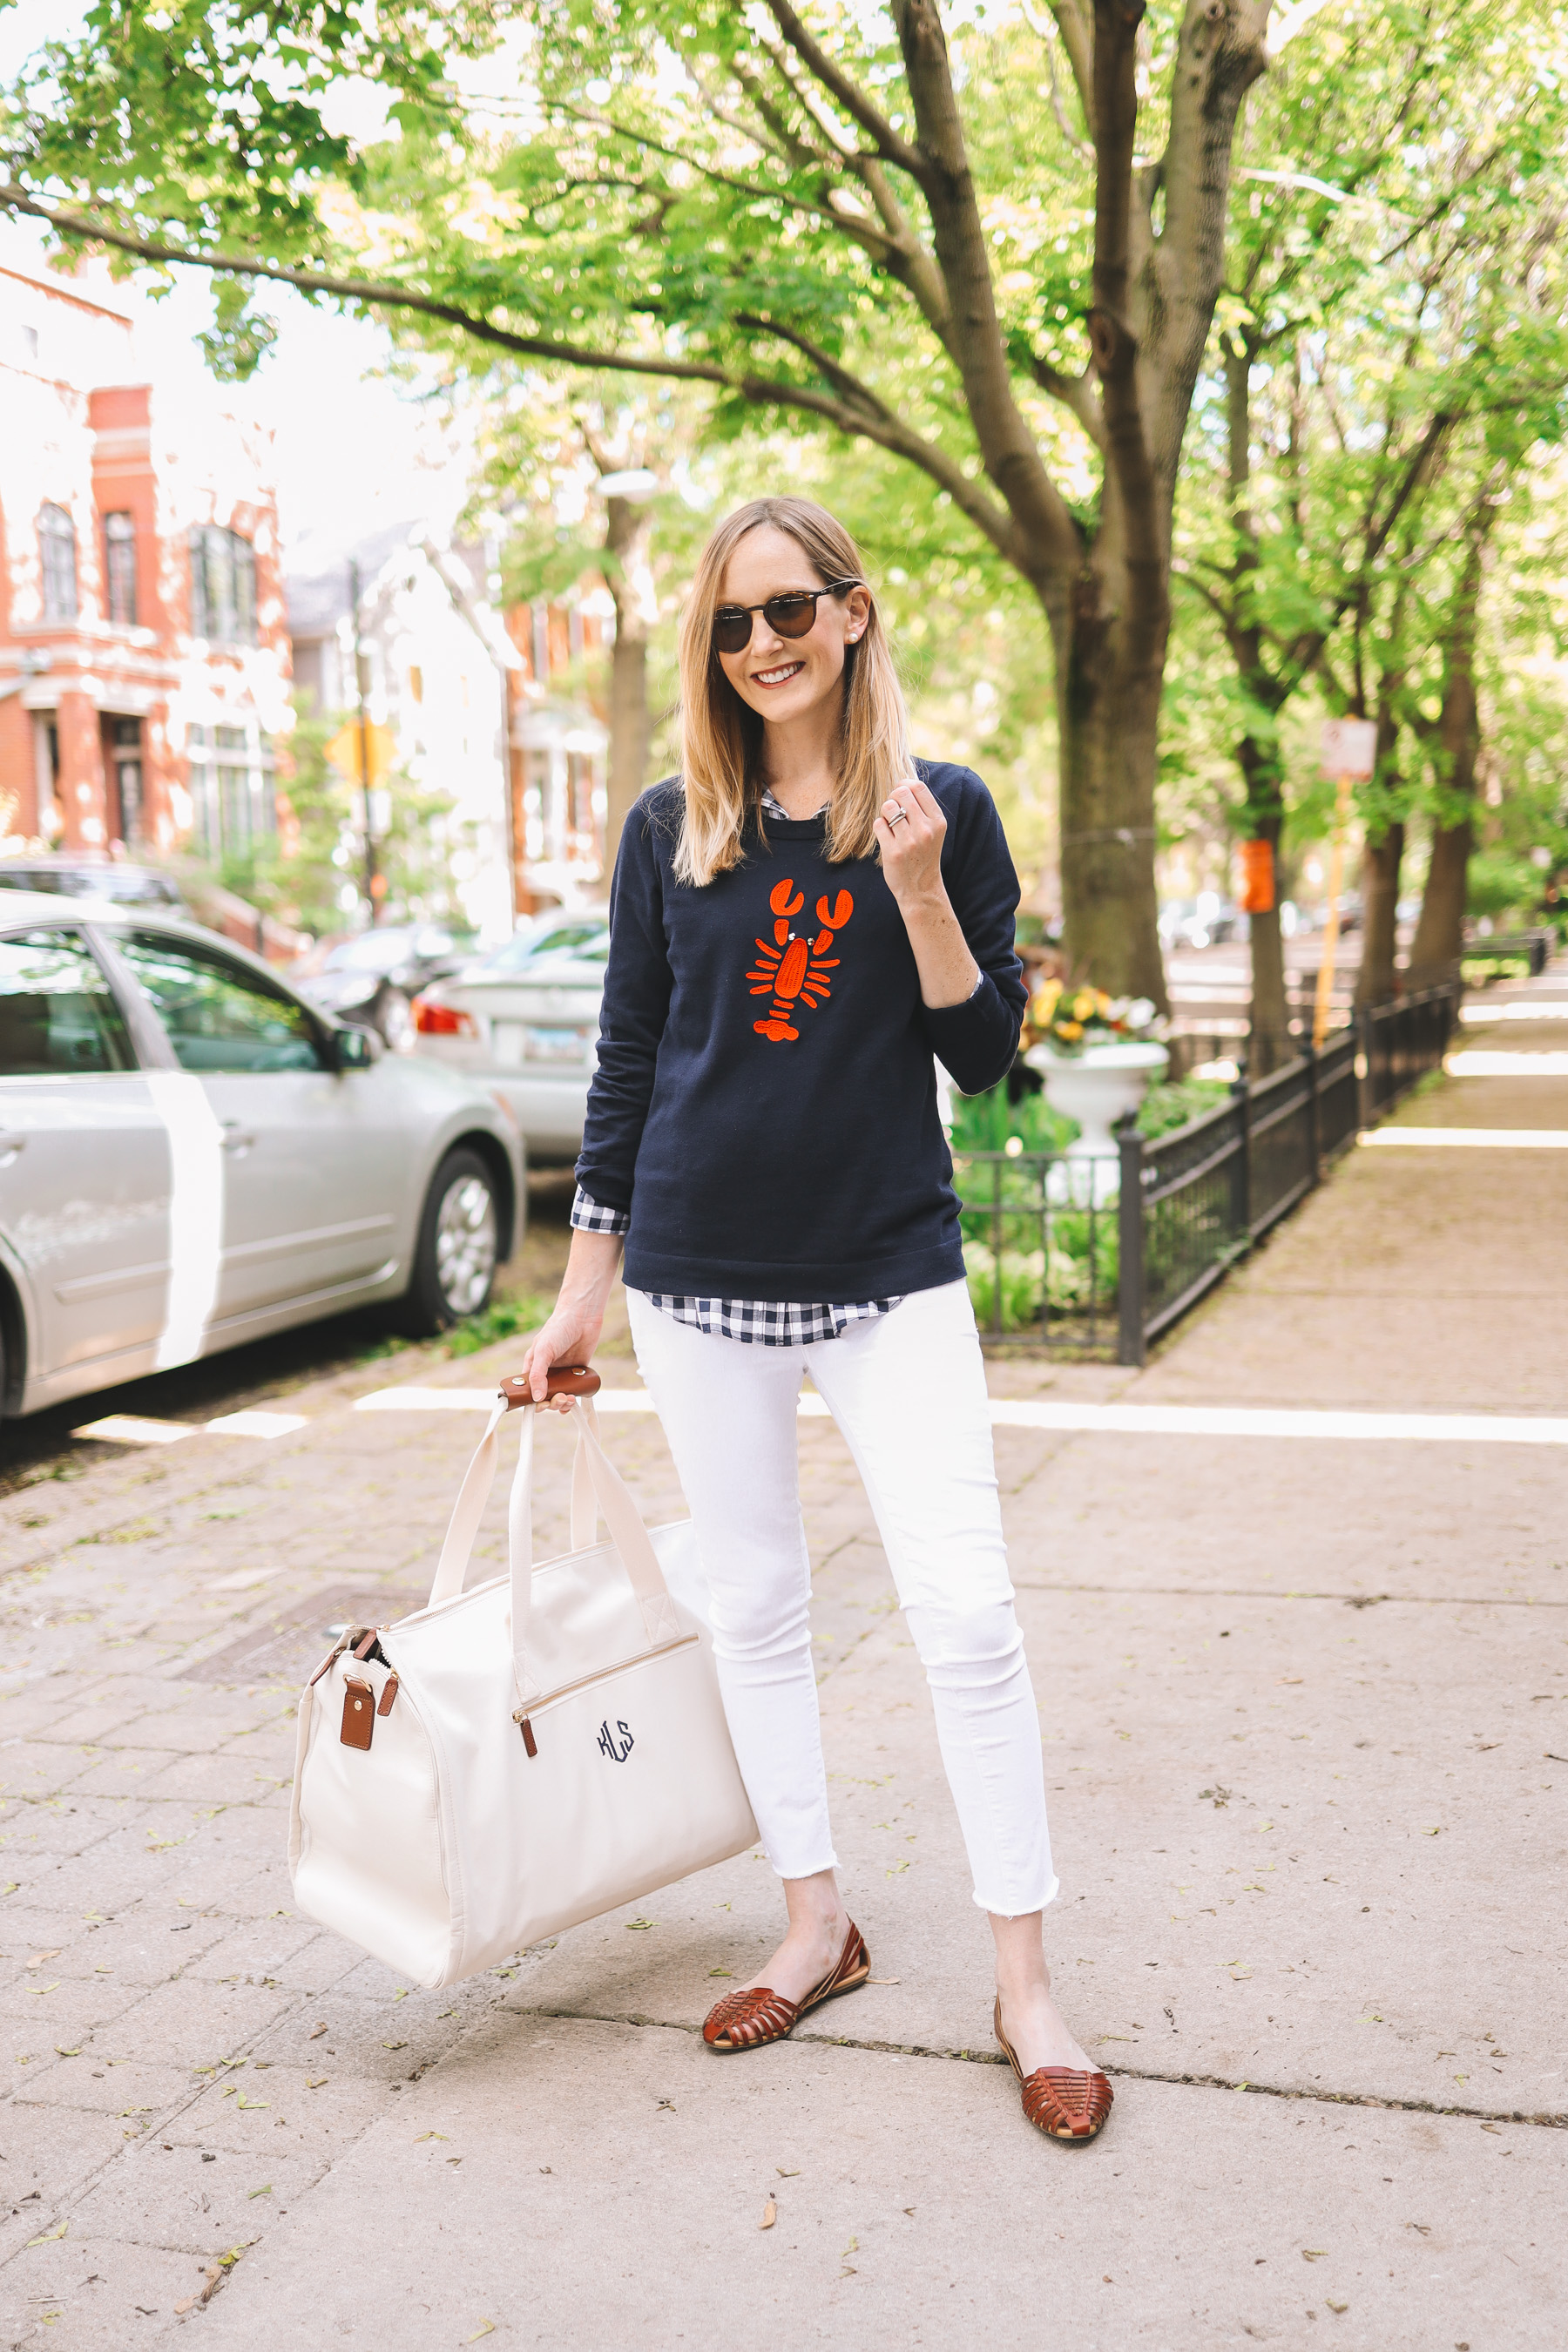 Kelly is sharing pieces from the Memorial Day J.Crew Factory Sale